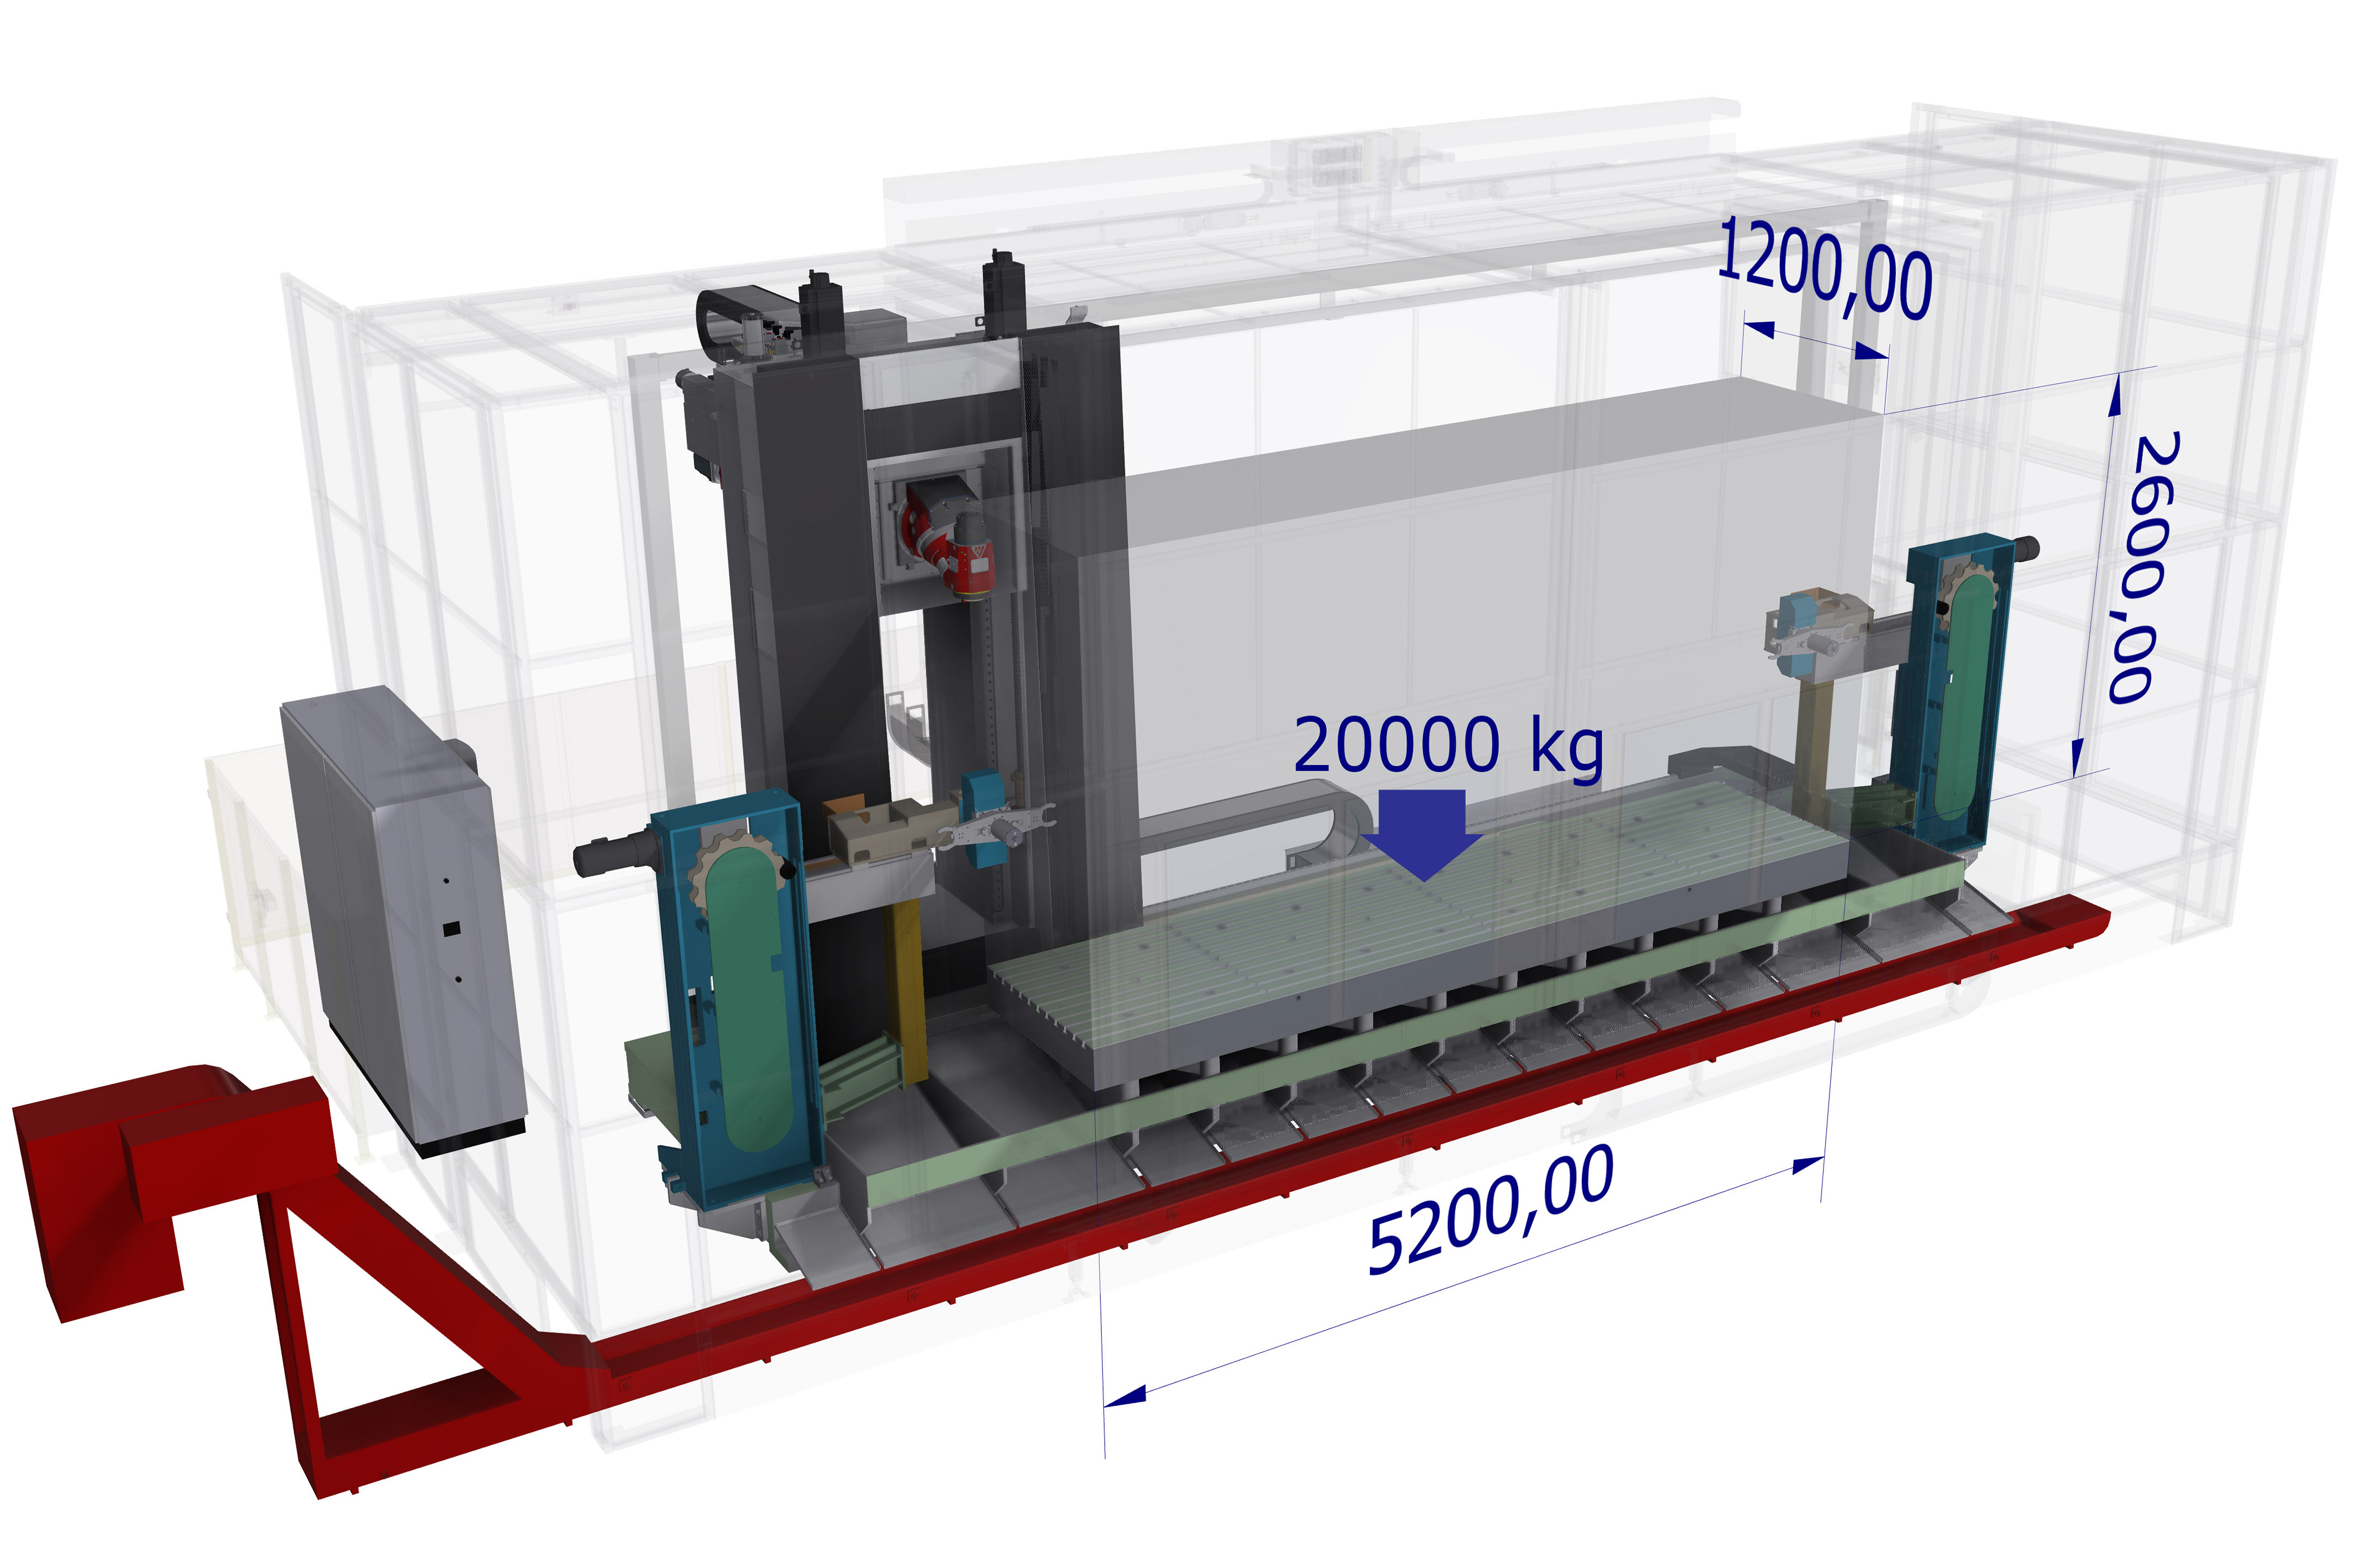 COMPACT 5000 - compact milling center - Image1